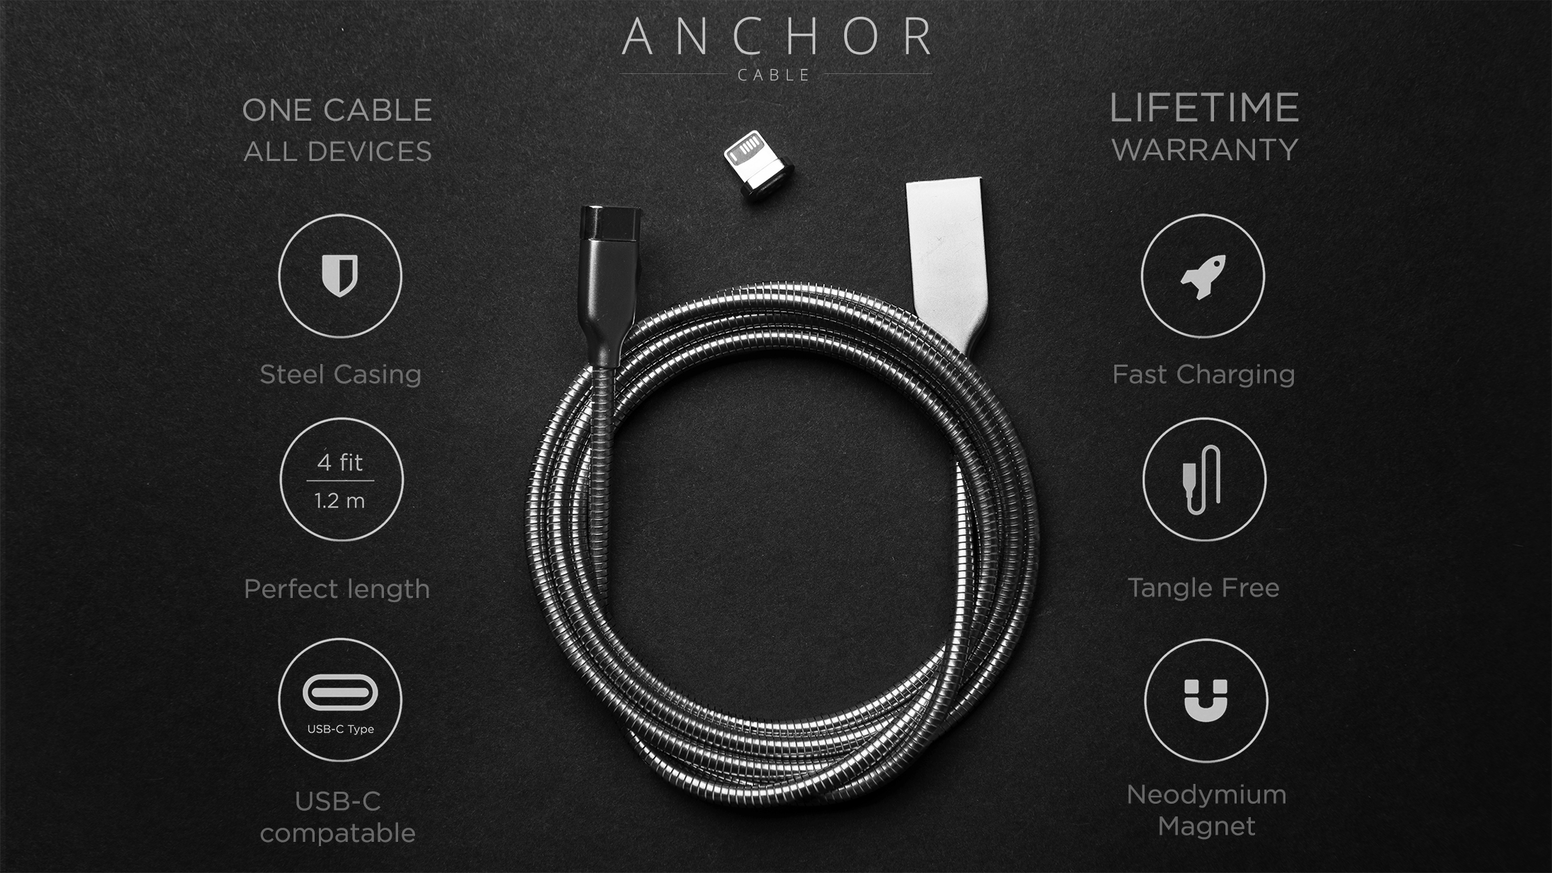 ANCHOR CABLE - Worlds first stainless steel magnetic CROSS DEVICE charging cable with USB type-C enabled and LIFETIME WARRANTY.